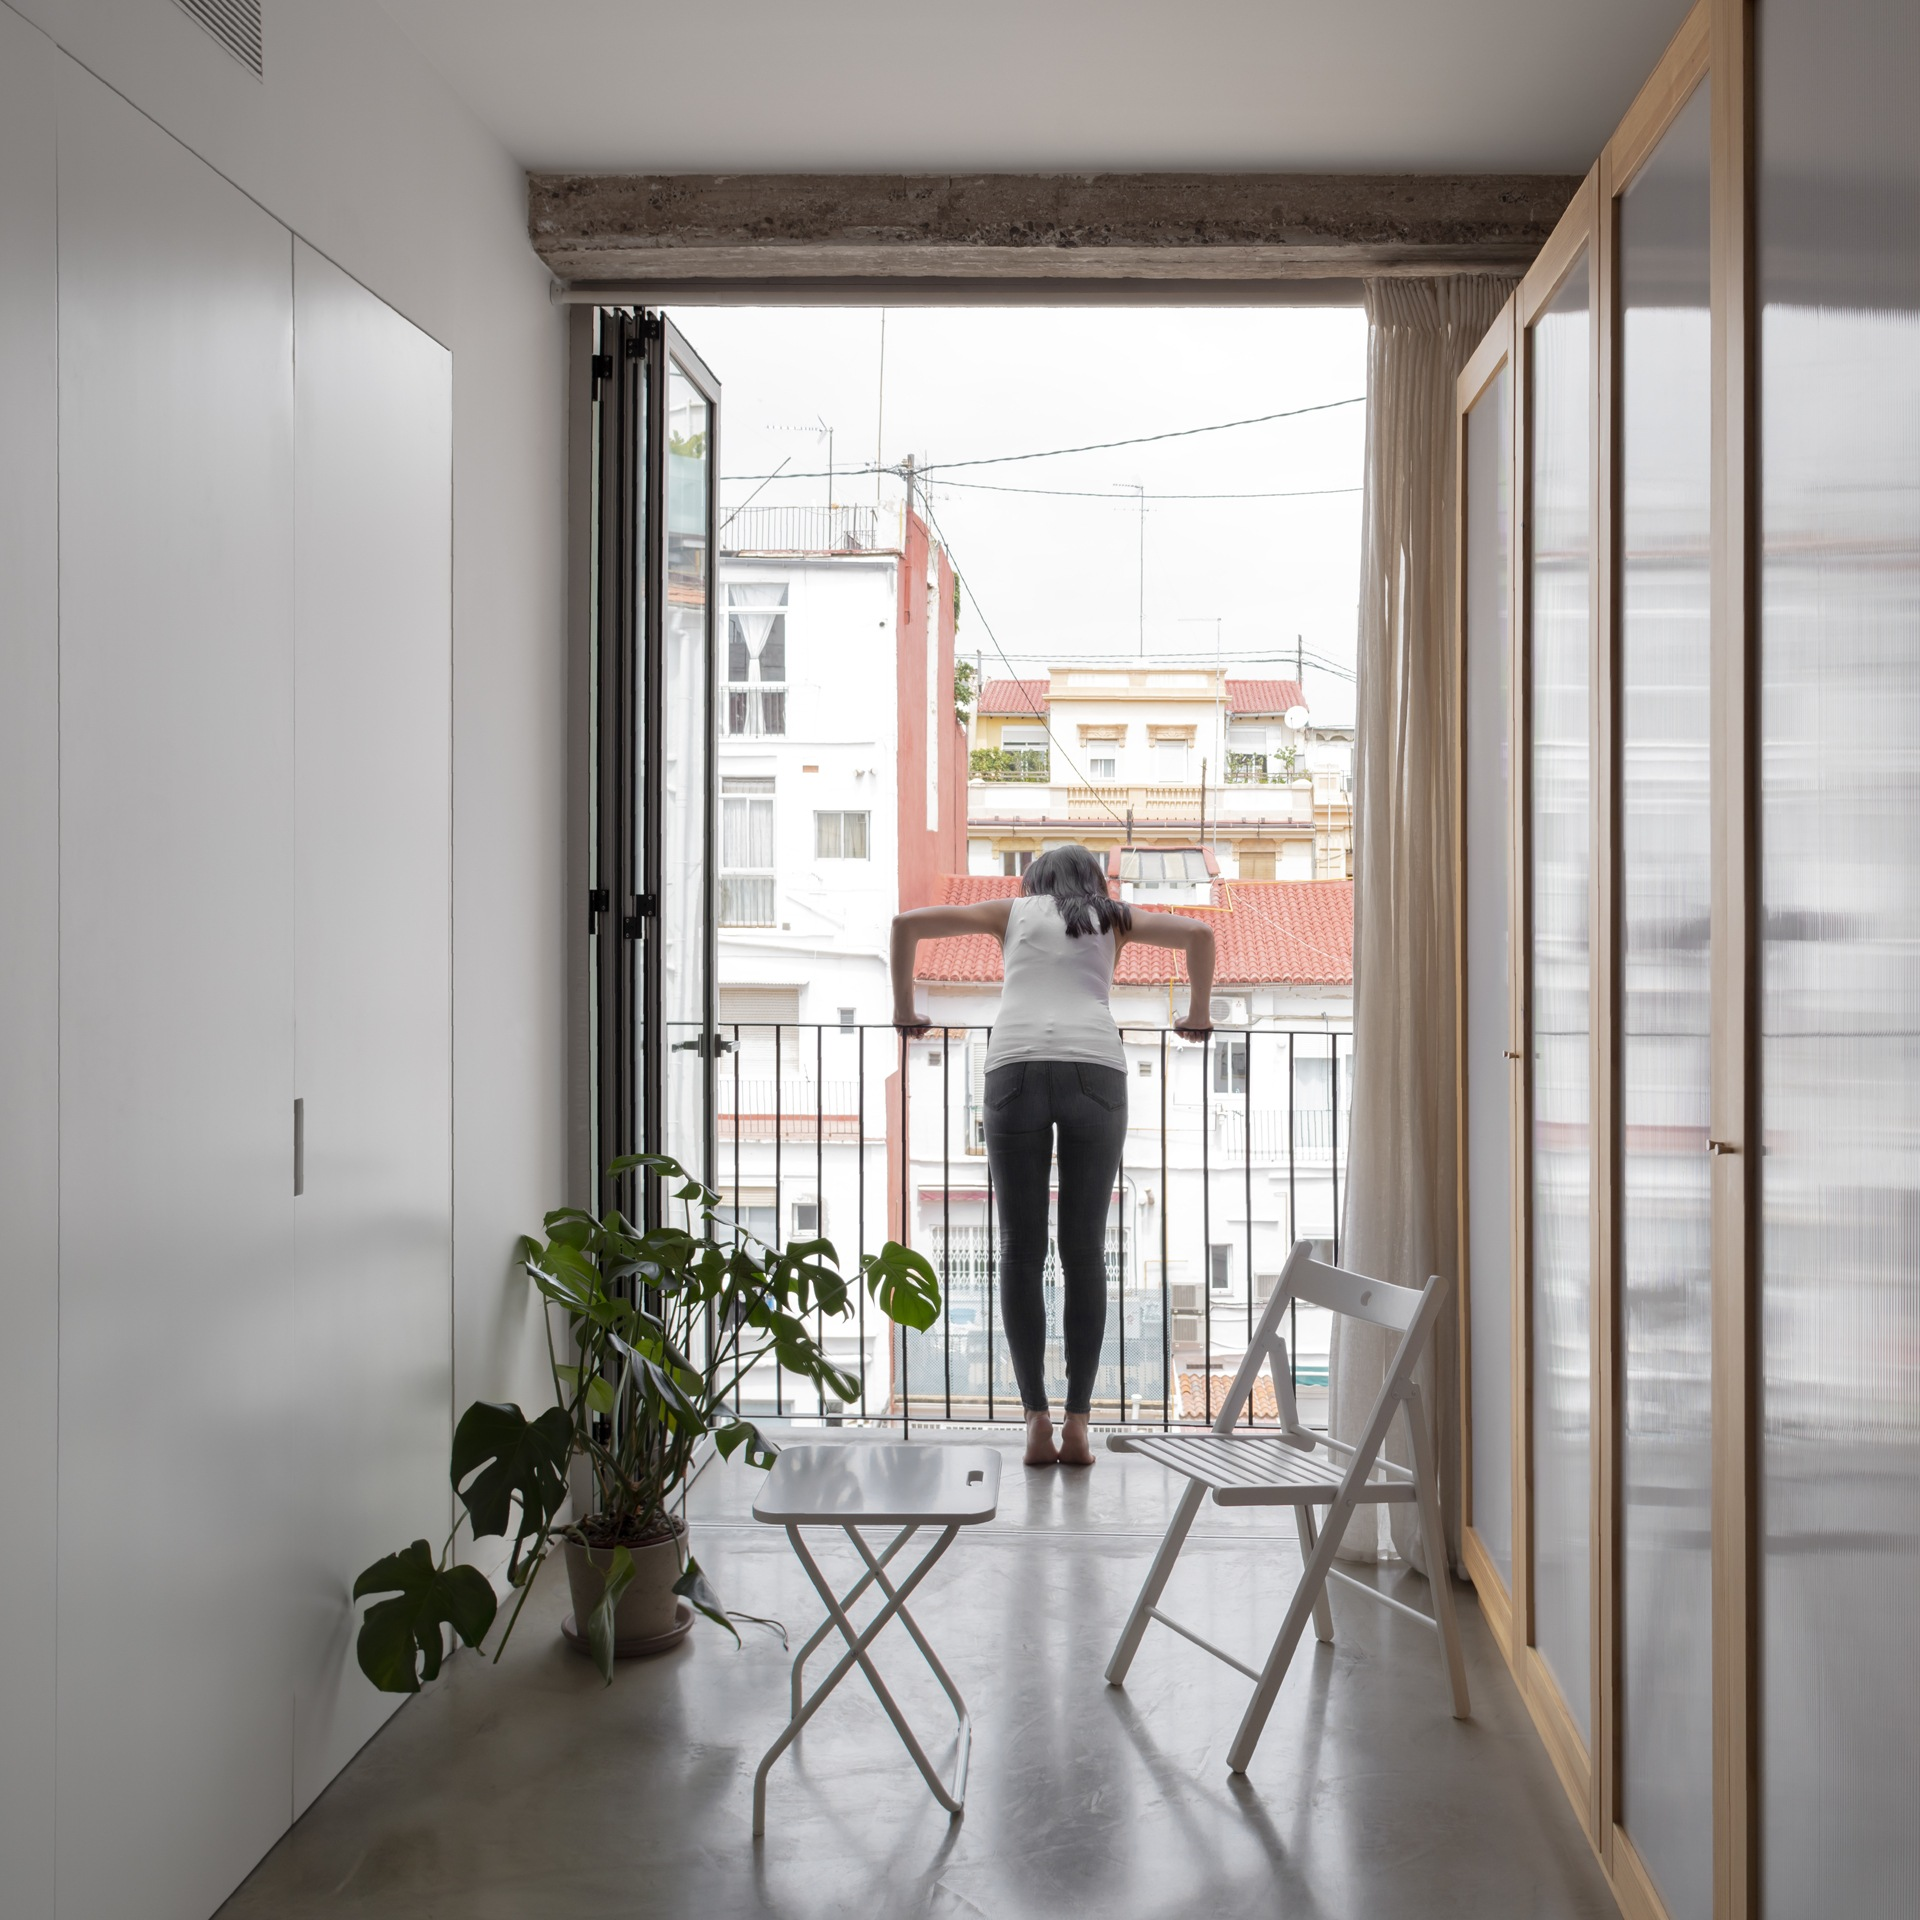 Literato Azorín Refurbishment; architects: Urlo Estudio. Photo by ©Milena Villalba 2019